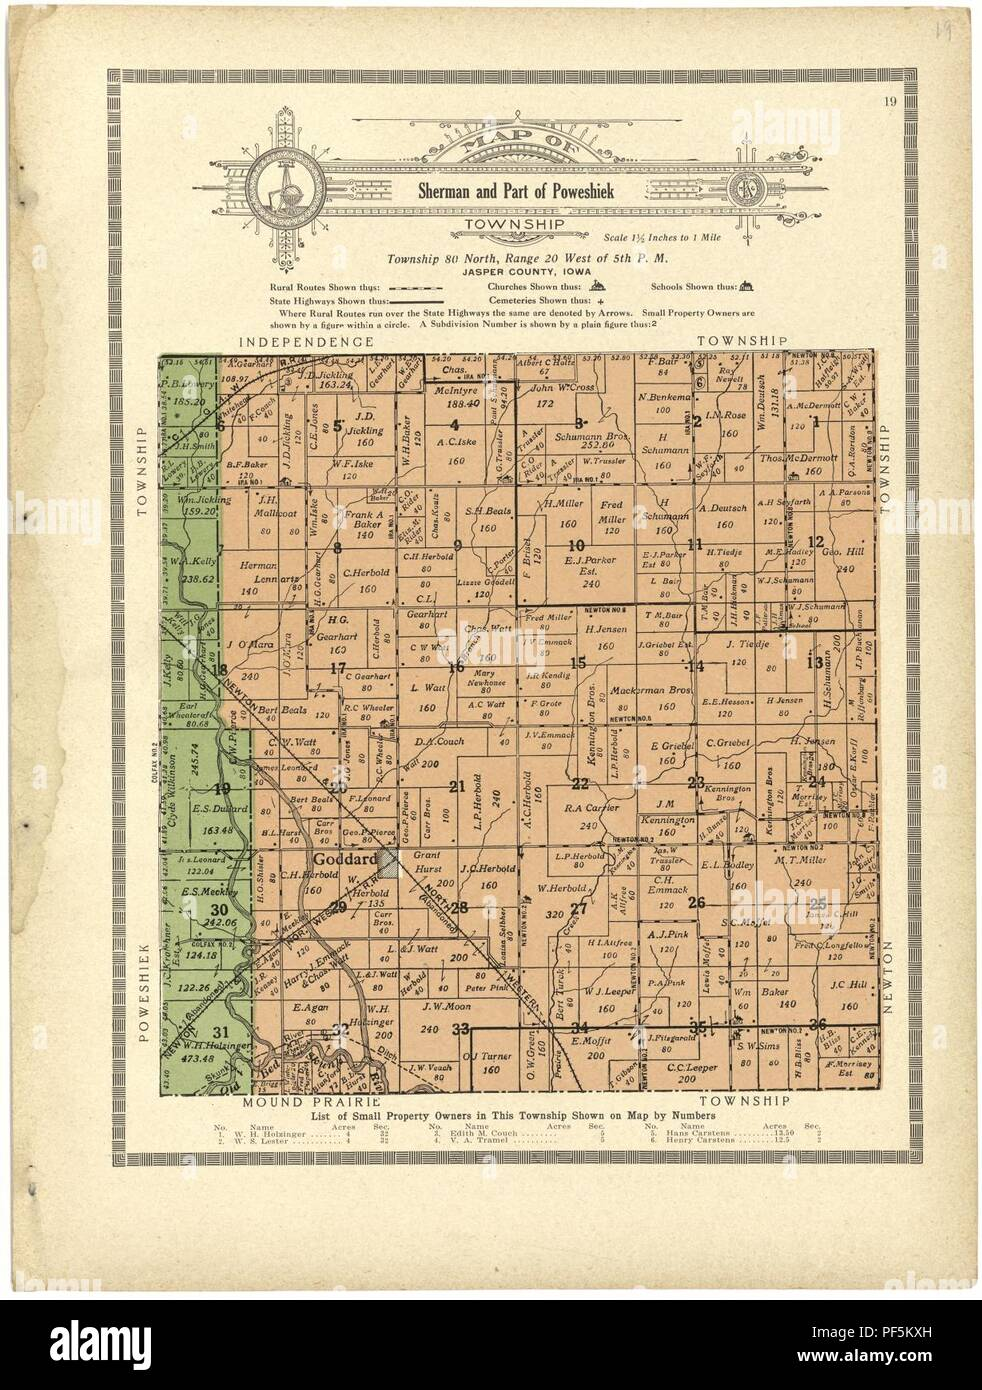 Jasper County Iowa Map.Atlas And Plat Book Of Jasper County Iowa Containing Outline Map